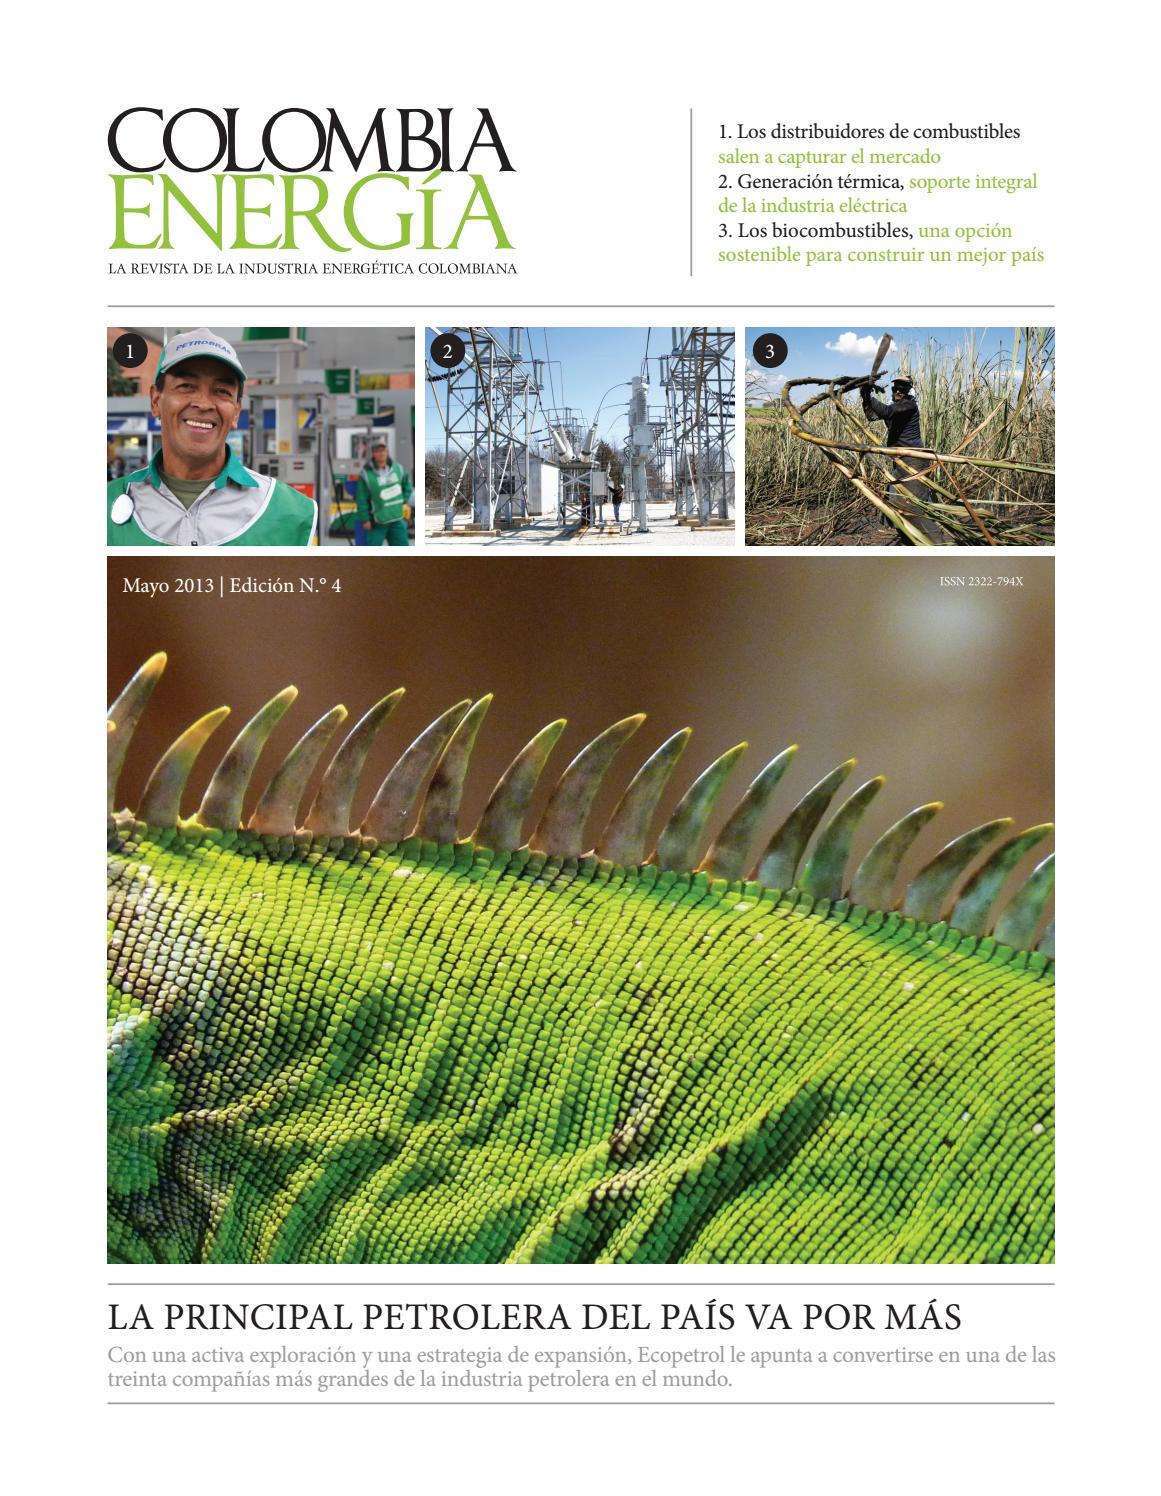 Revista colombia energia e4 by Lissette Morelos - issuu